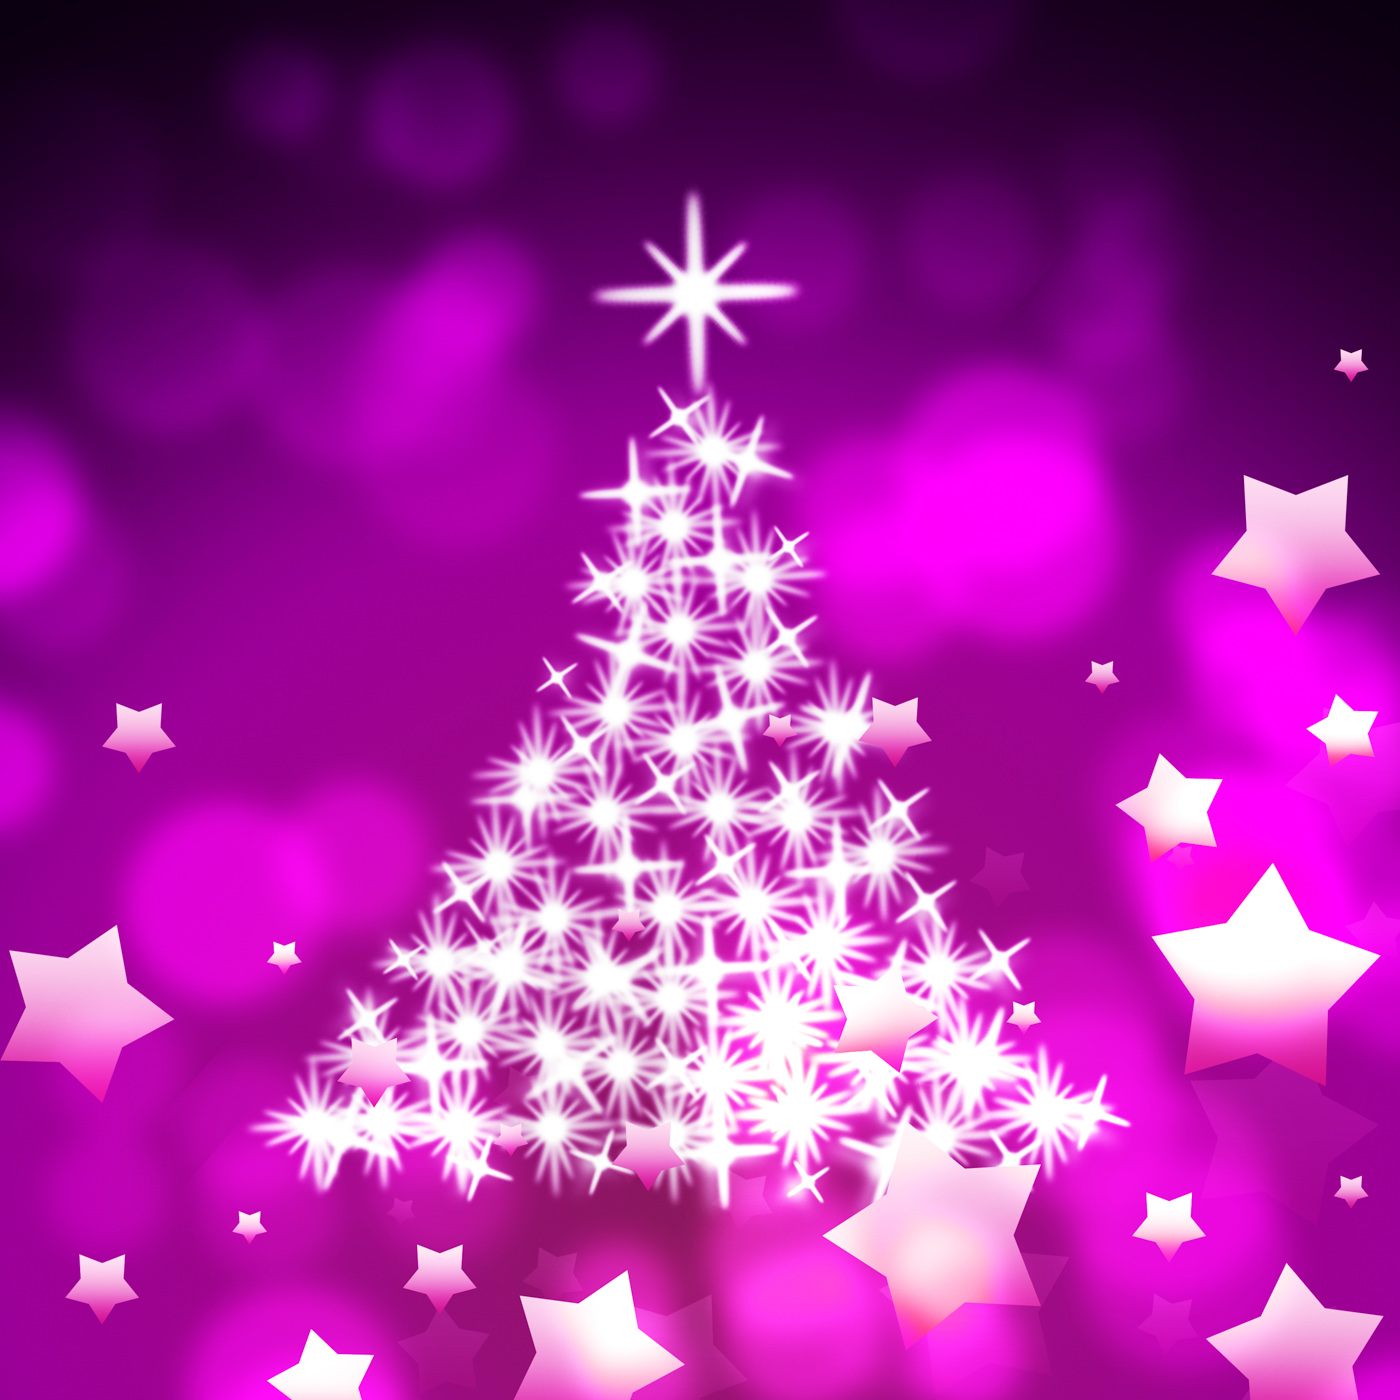 Xmas Tree Represents Bokeh Lights And Color, Blur, Mauve, Winter, Stars, HQ Photo